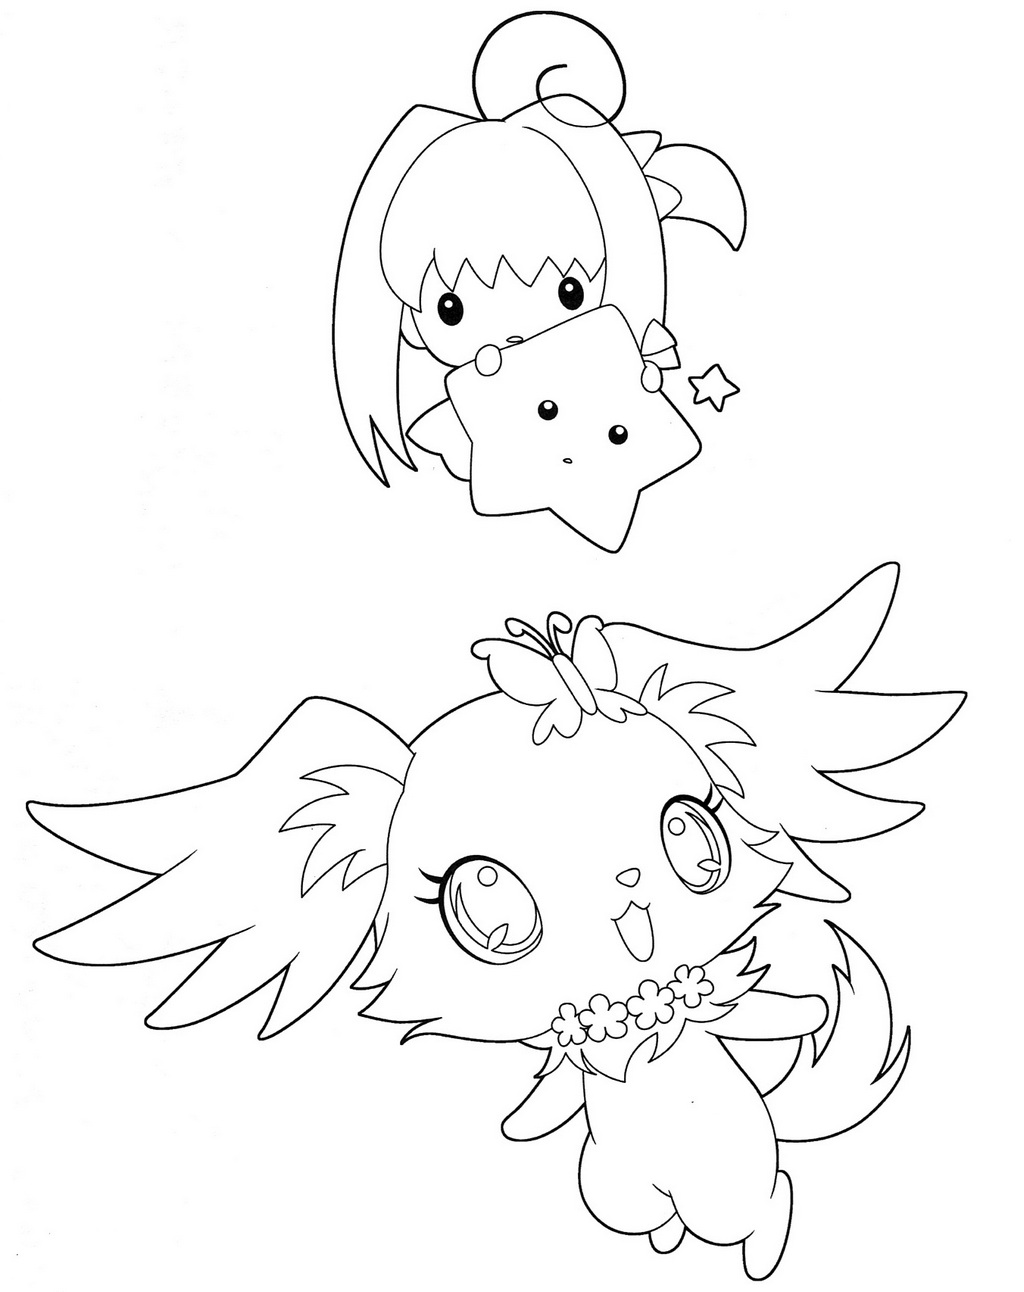 Fun Jewelpet Coloring and Activity Page for Kids